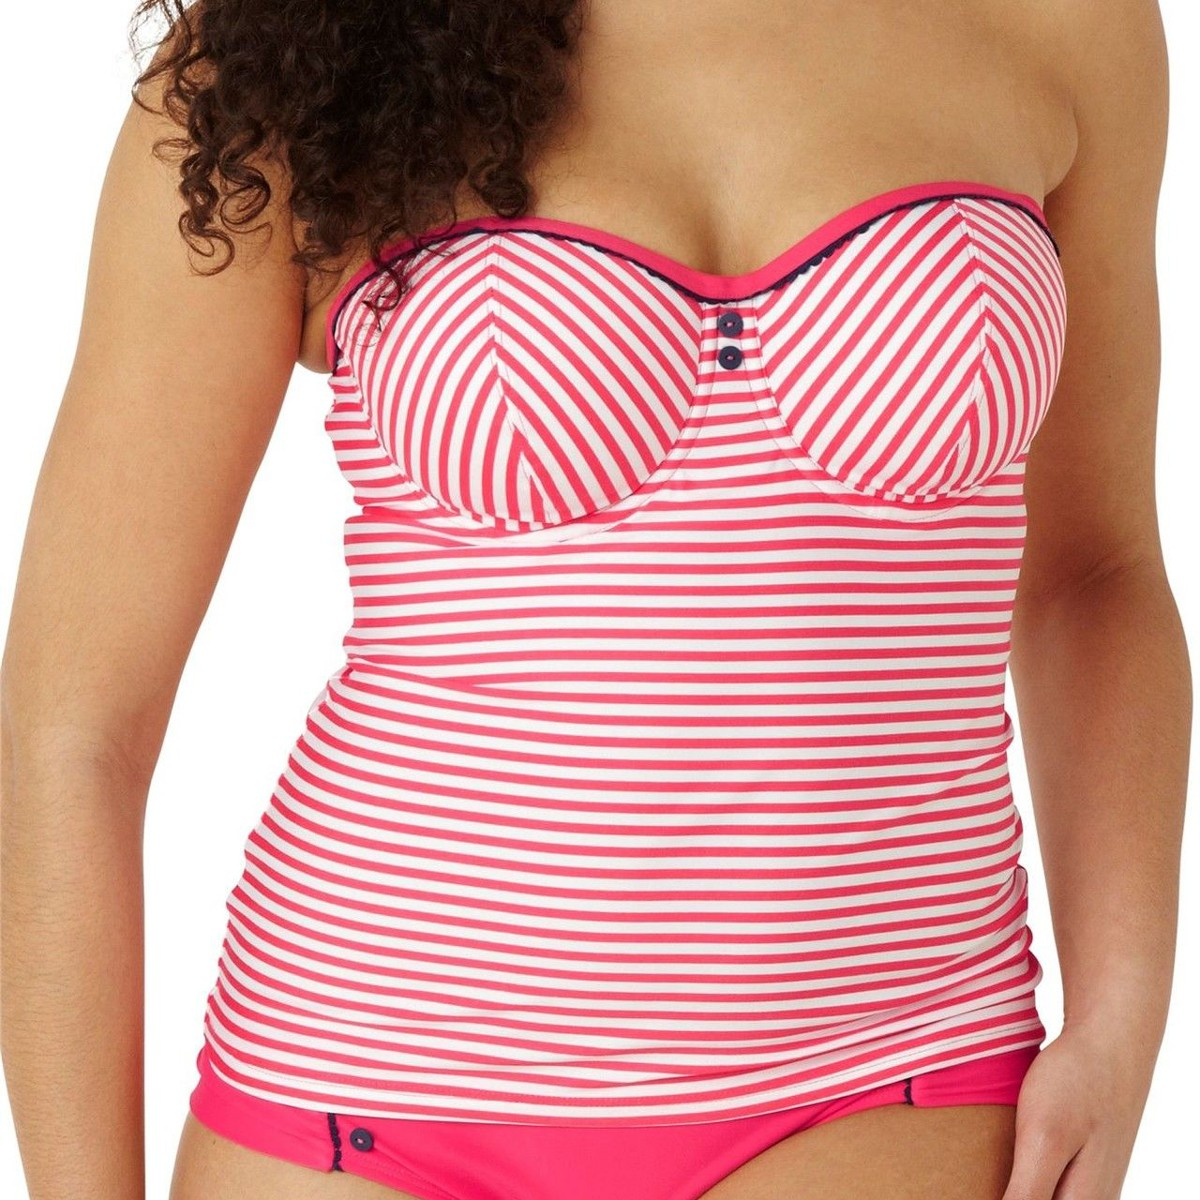 Panache Cleo Lucille Padded Bandeau Tankini Top - Coral